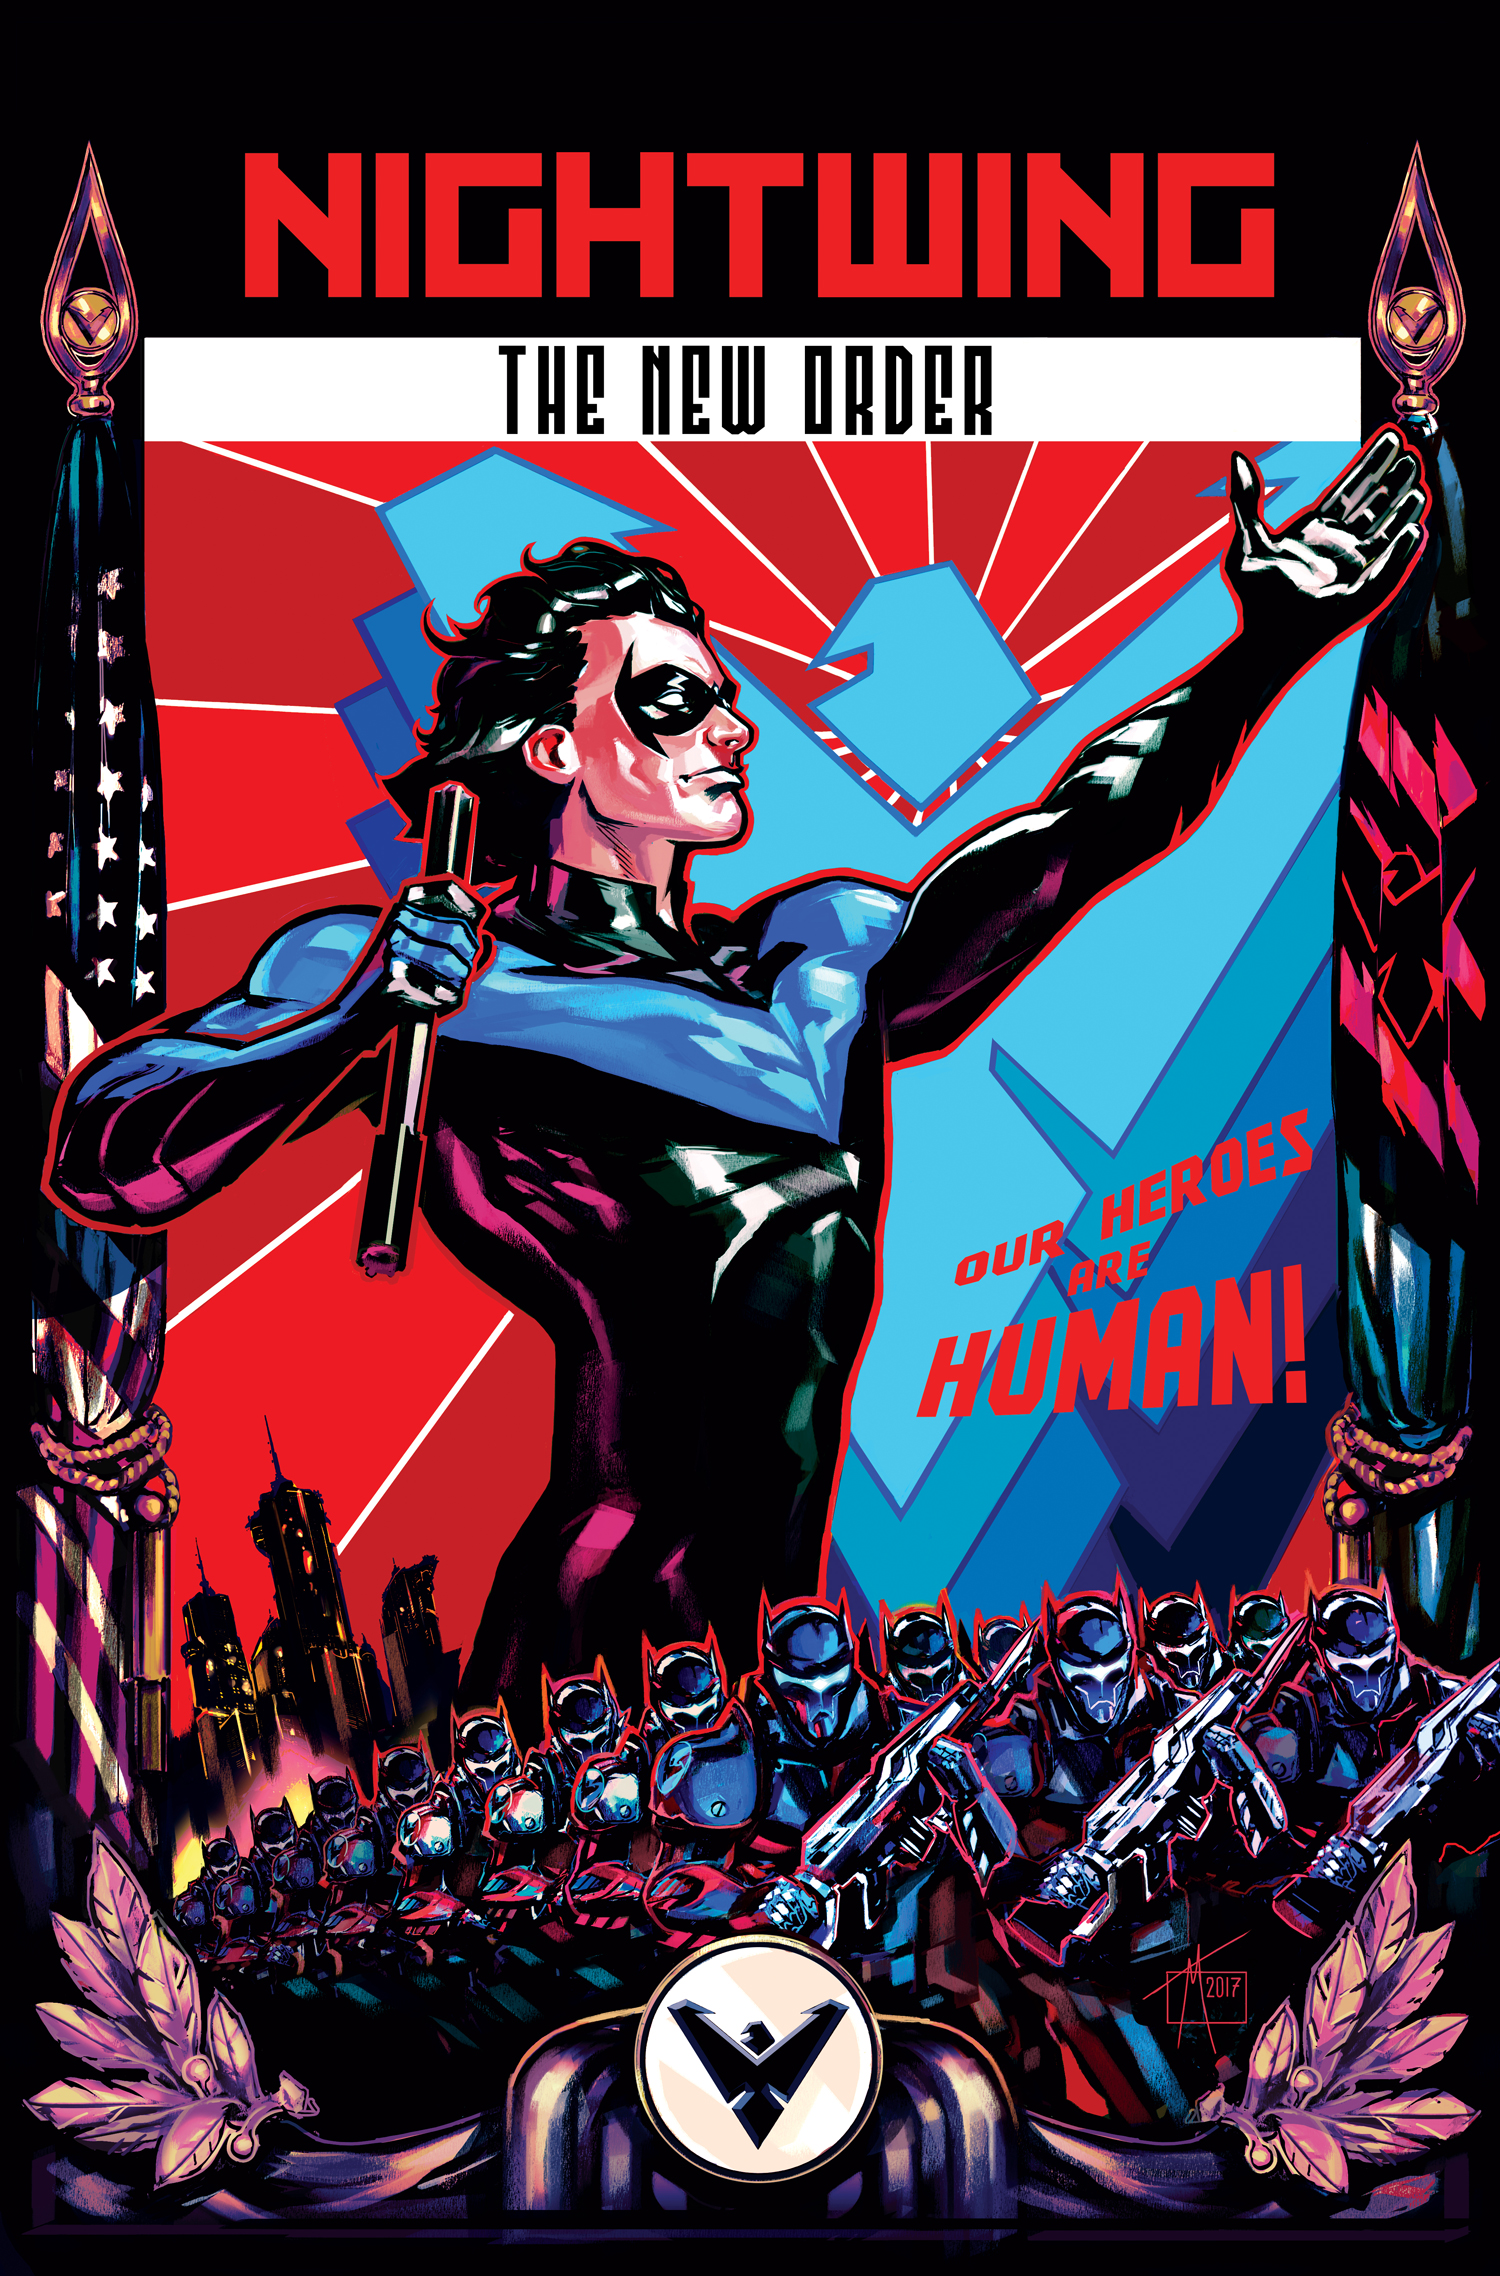 'The New Order' coming soon from DC Comics